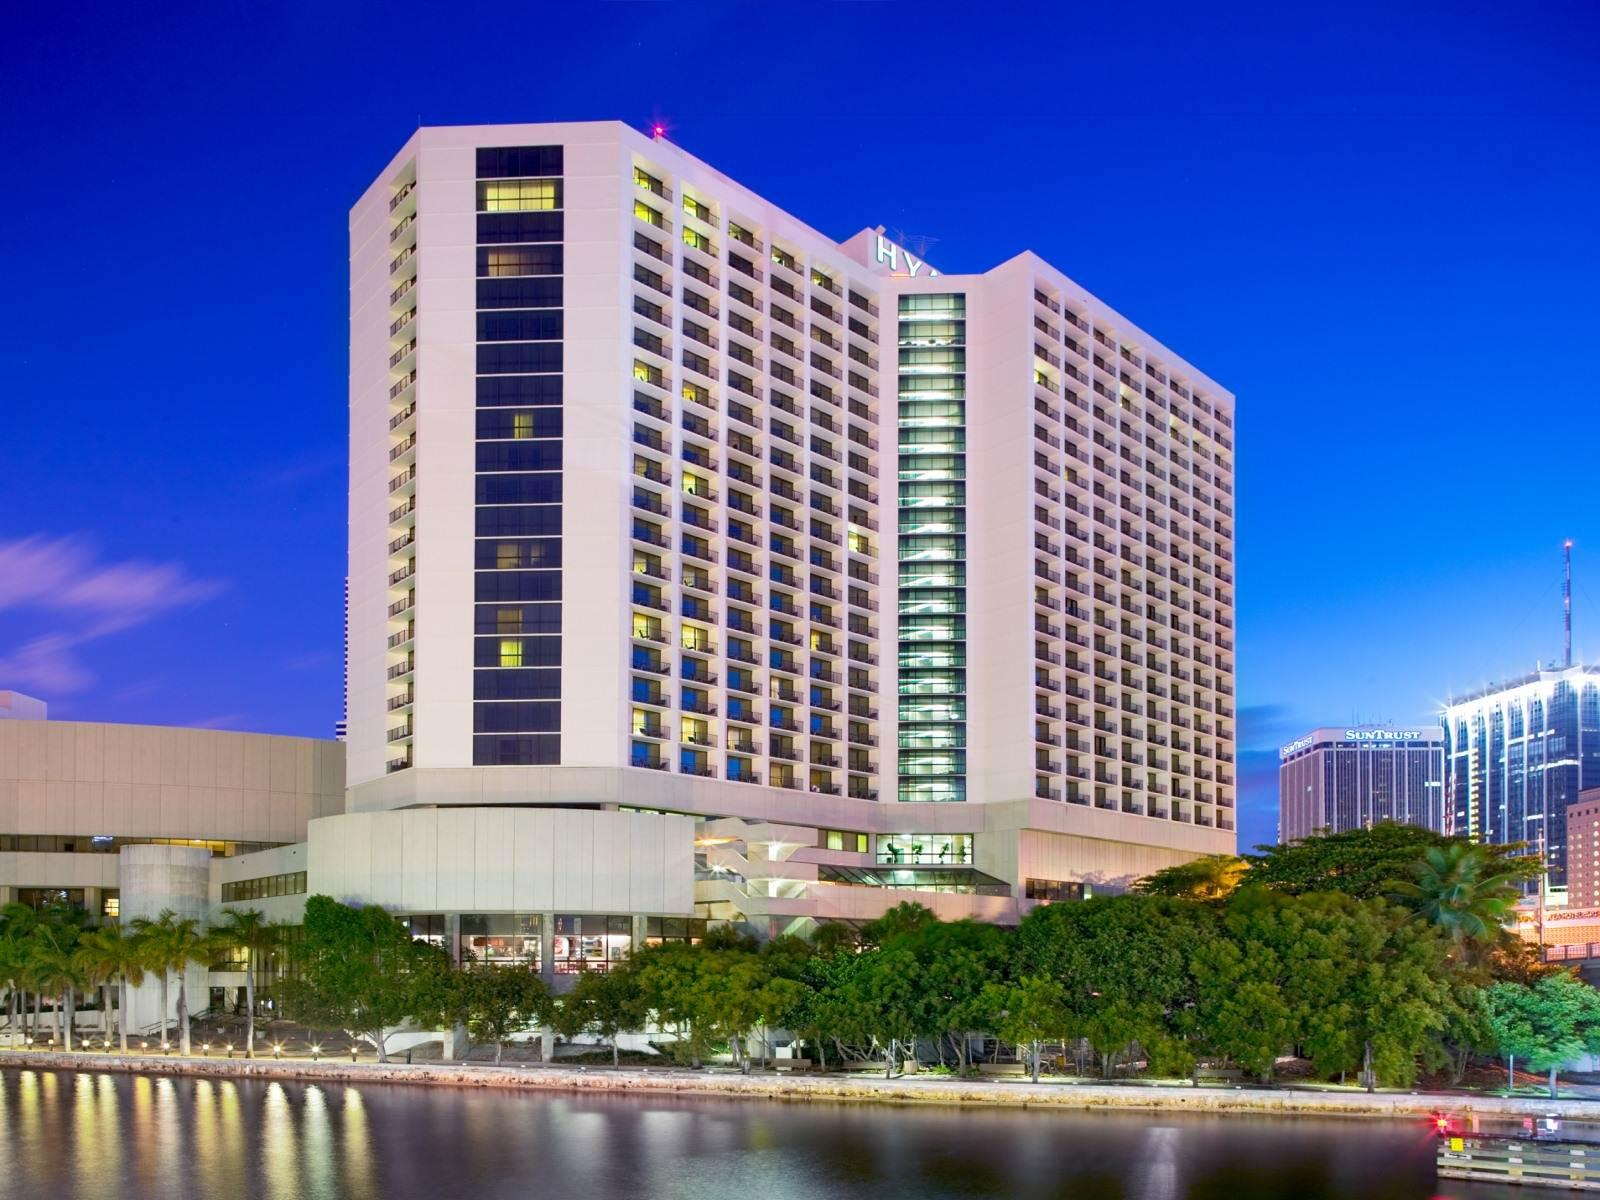 Hyatt Regency Miami Hotel